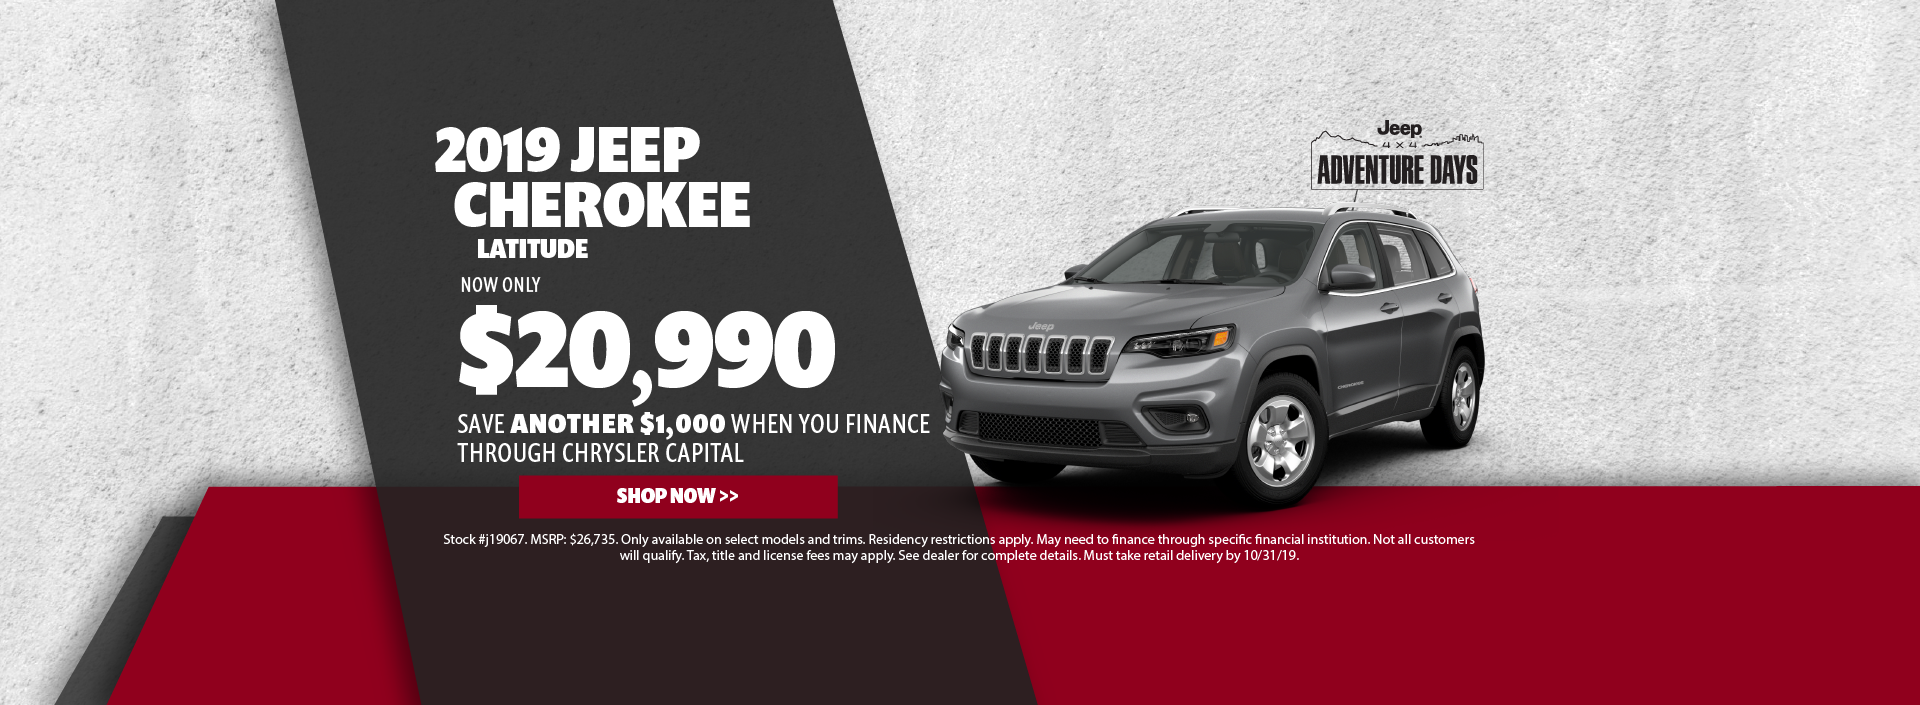 2019 Jeep Cherokee Offer